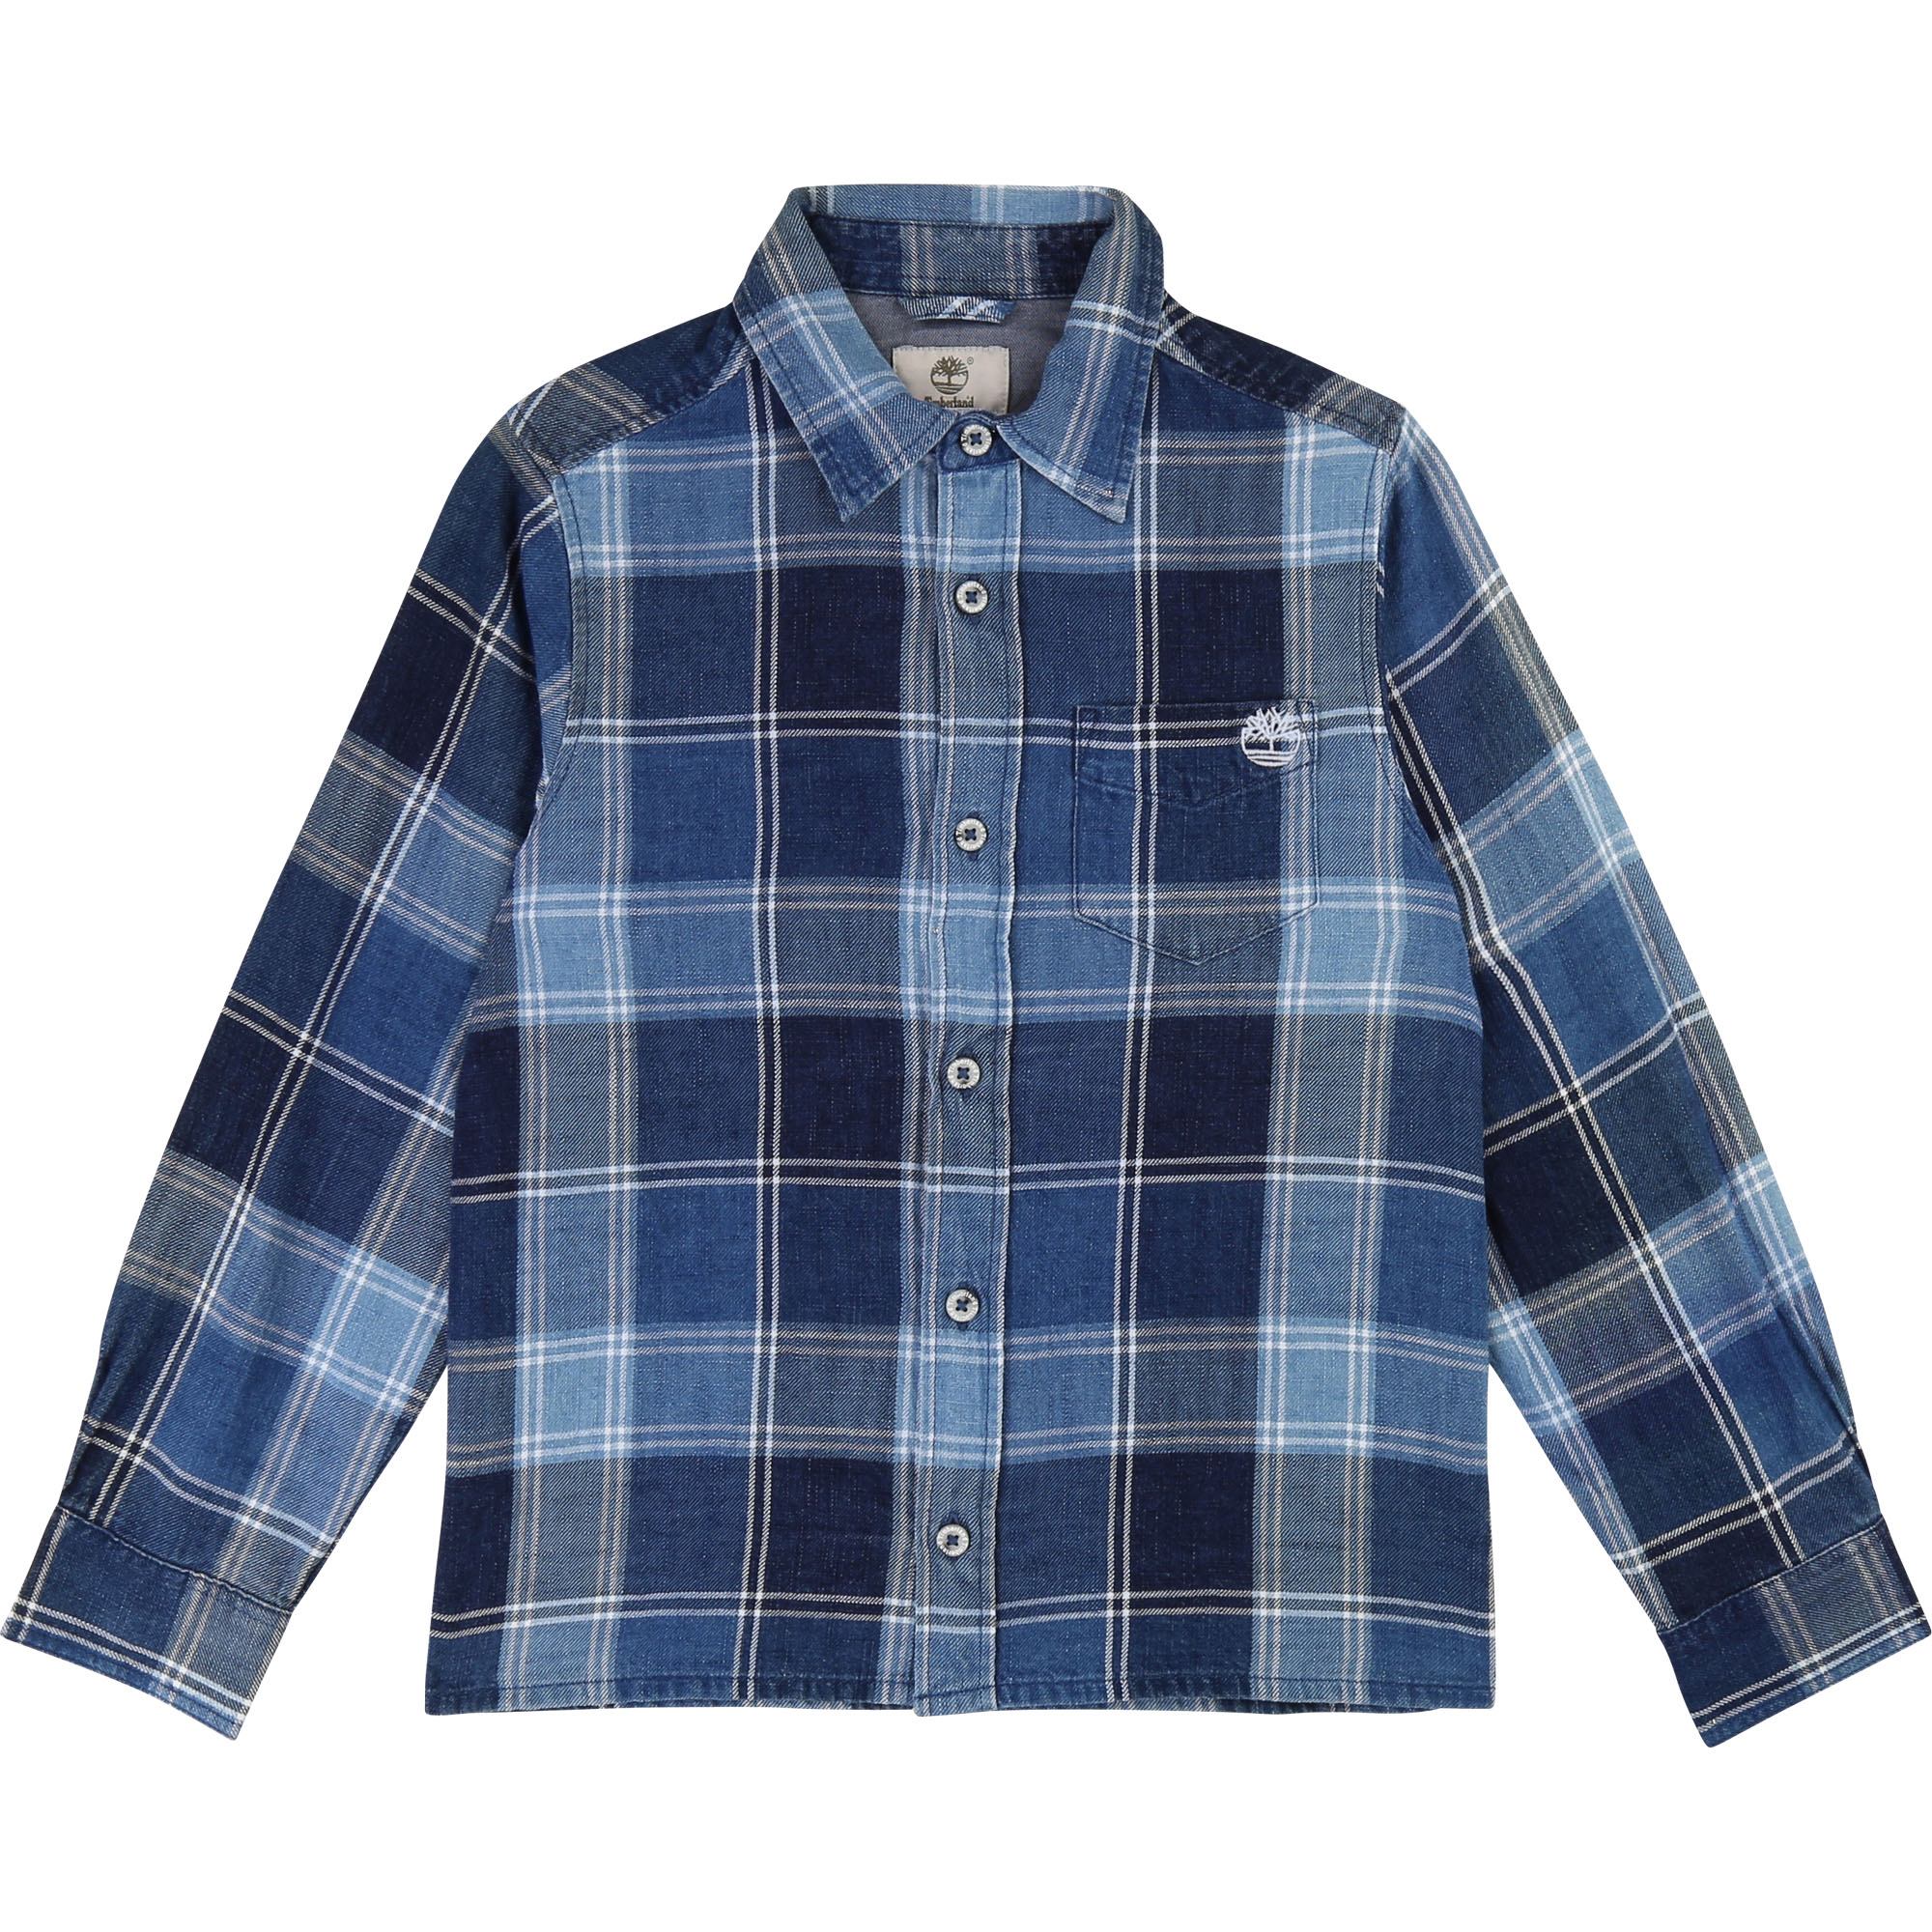 Cotton twill shirt TIMBERLAND for BOY